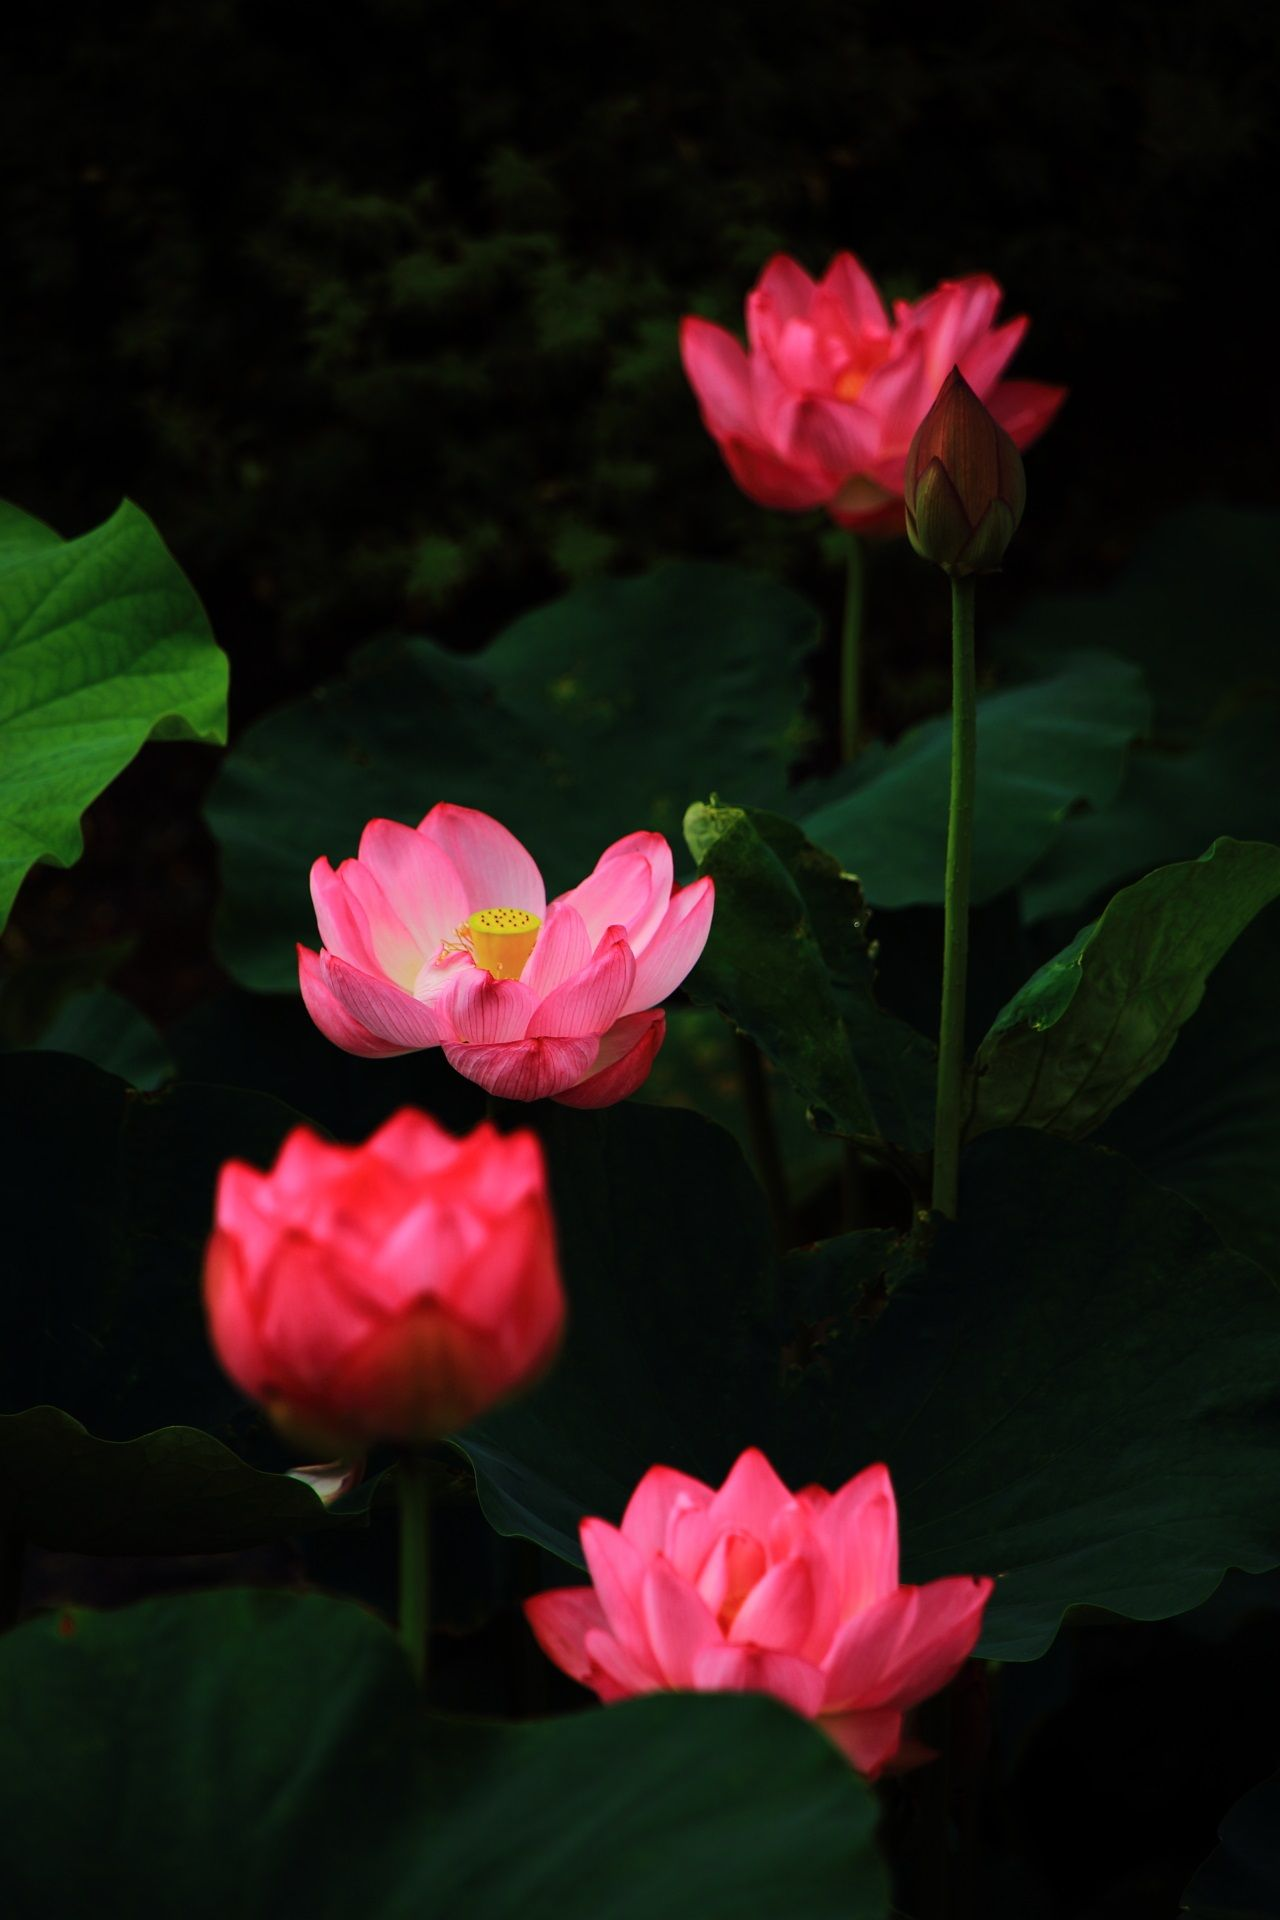 Lotus Flower Of Toji Temple In Kyoto Japan 蓮の花 美しい花 ハスの花